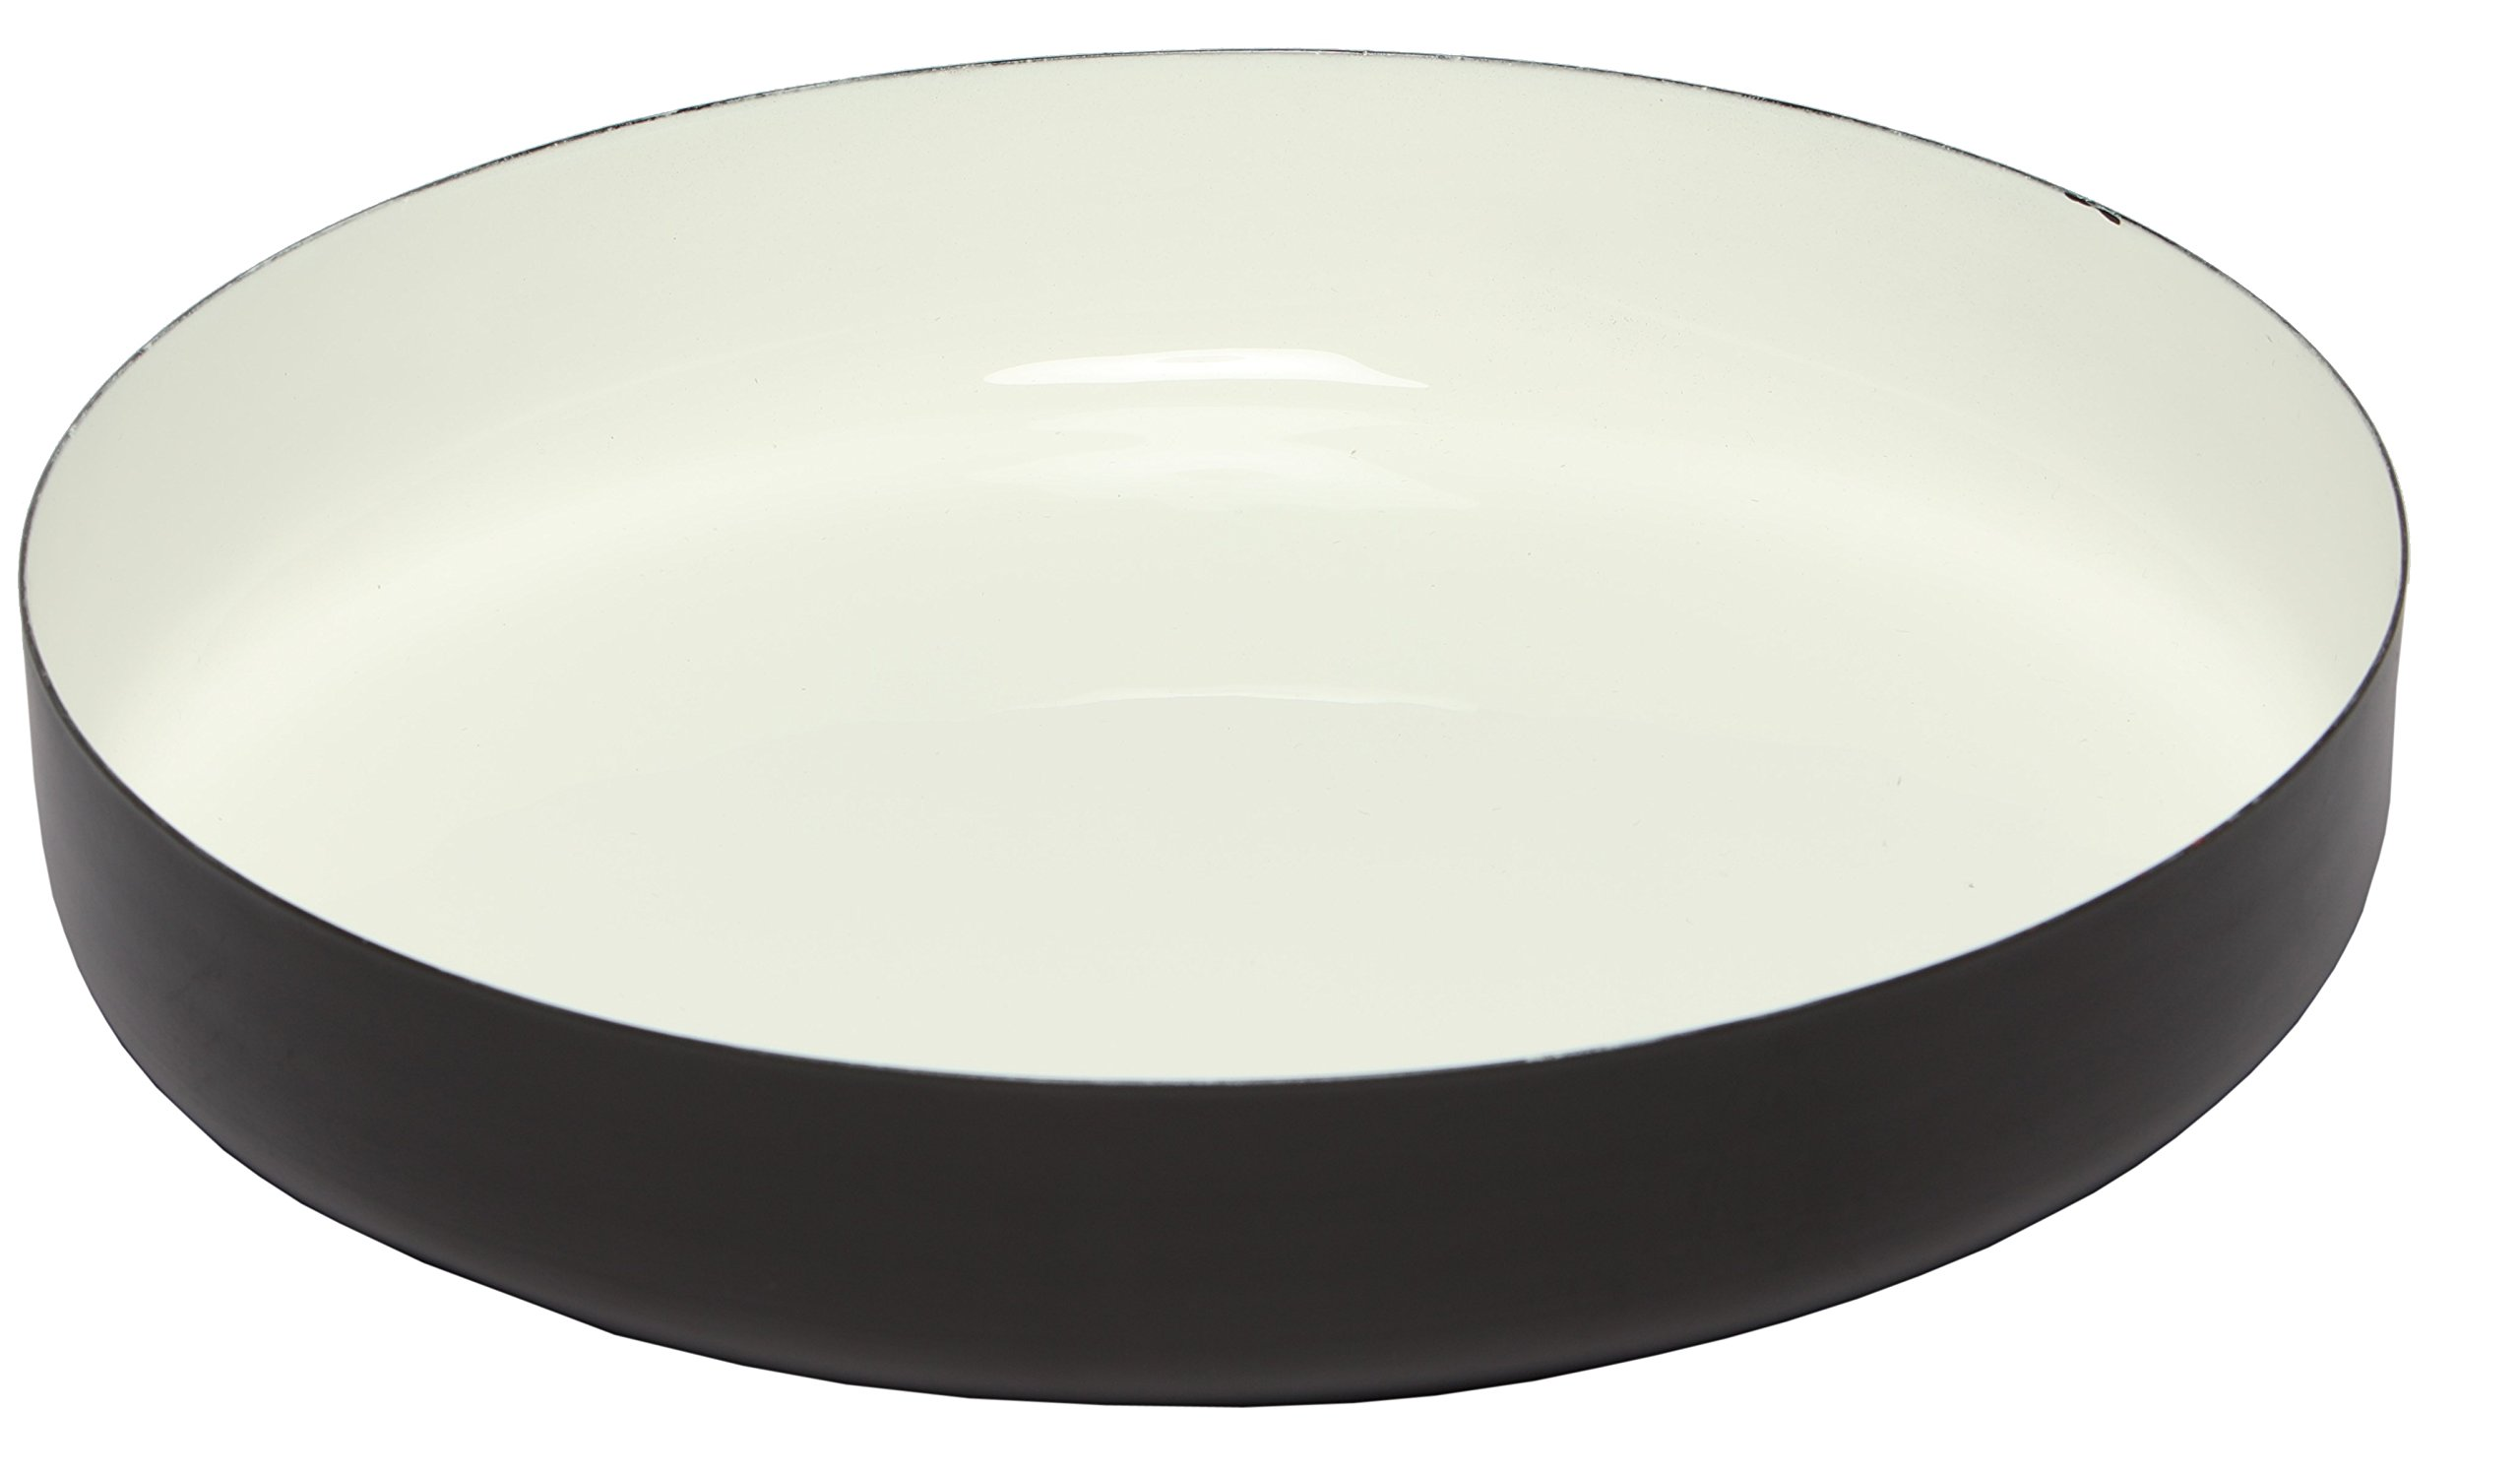 Melange Home Decor Modern Collection, 12-inch Round Platter, Color - White